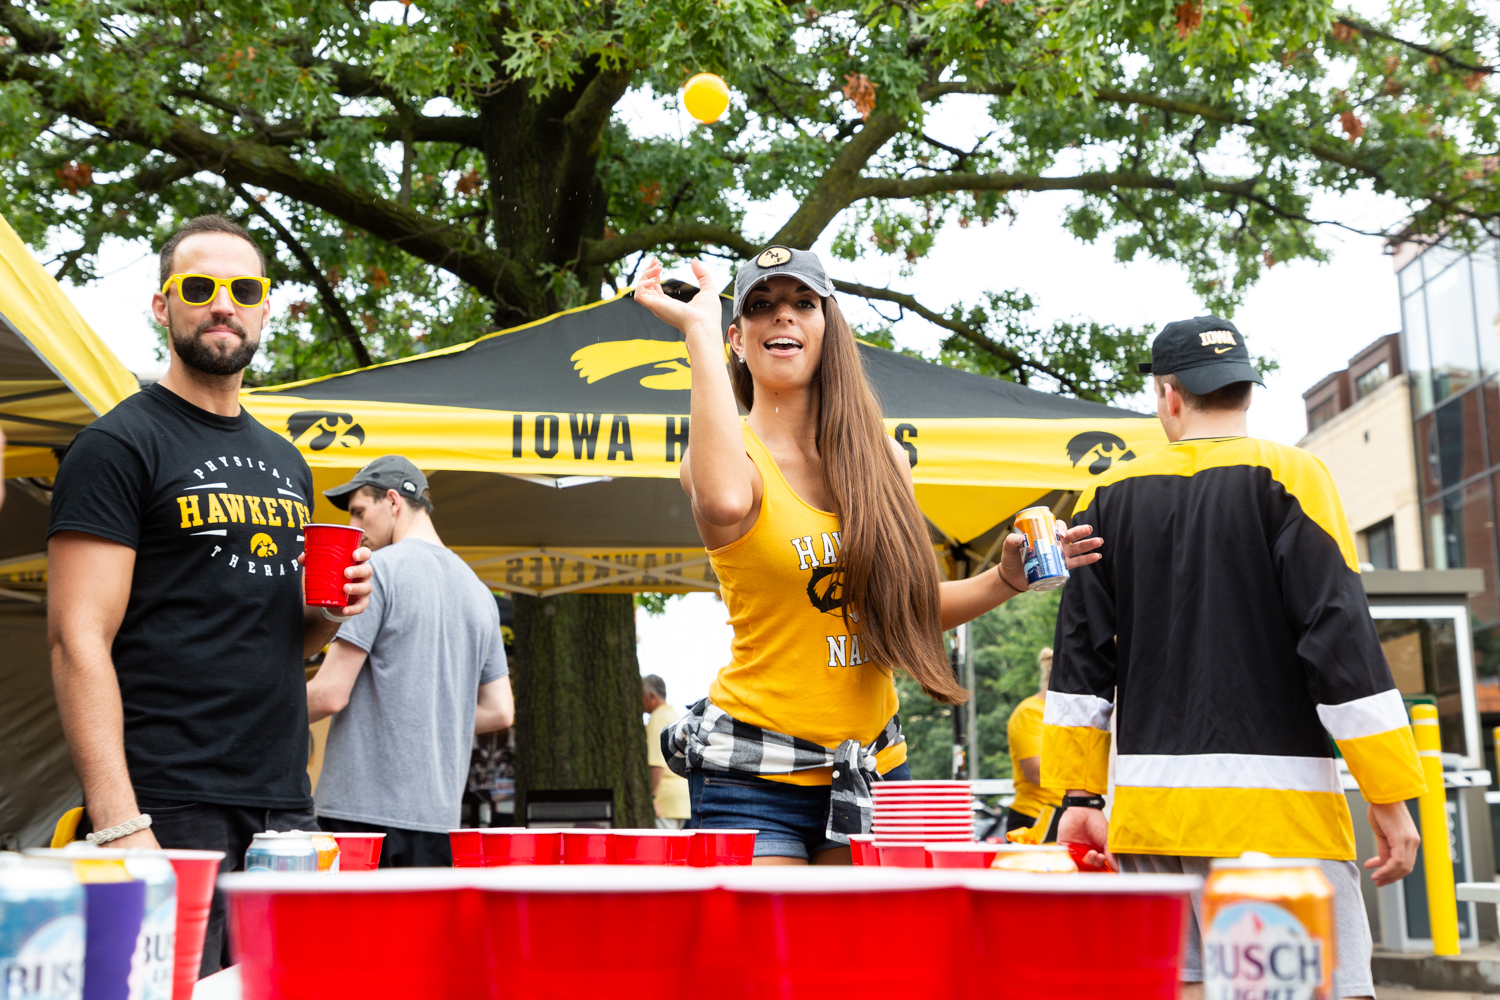 Tambel Thoma from Chicago tailgates before a football game in Iowa City on Saturday, Sept. 1, 2018.